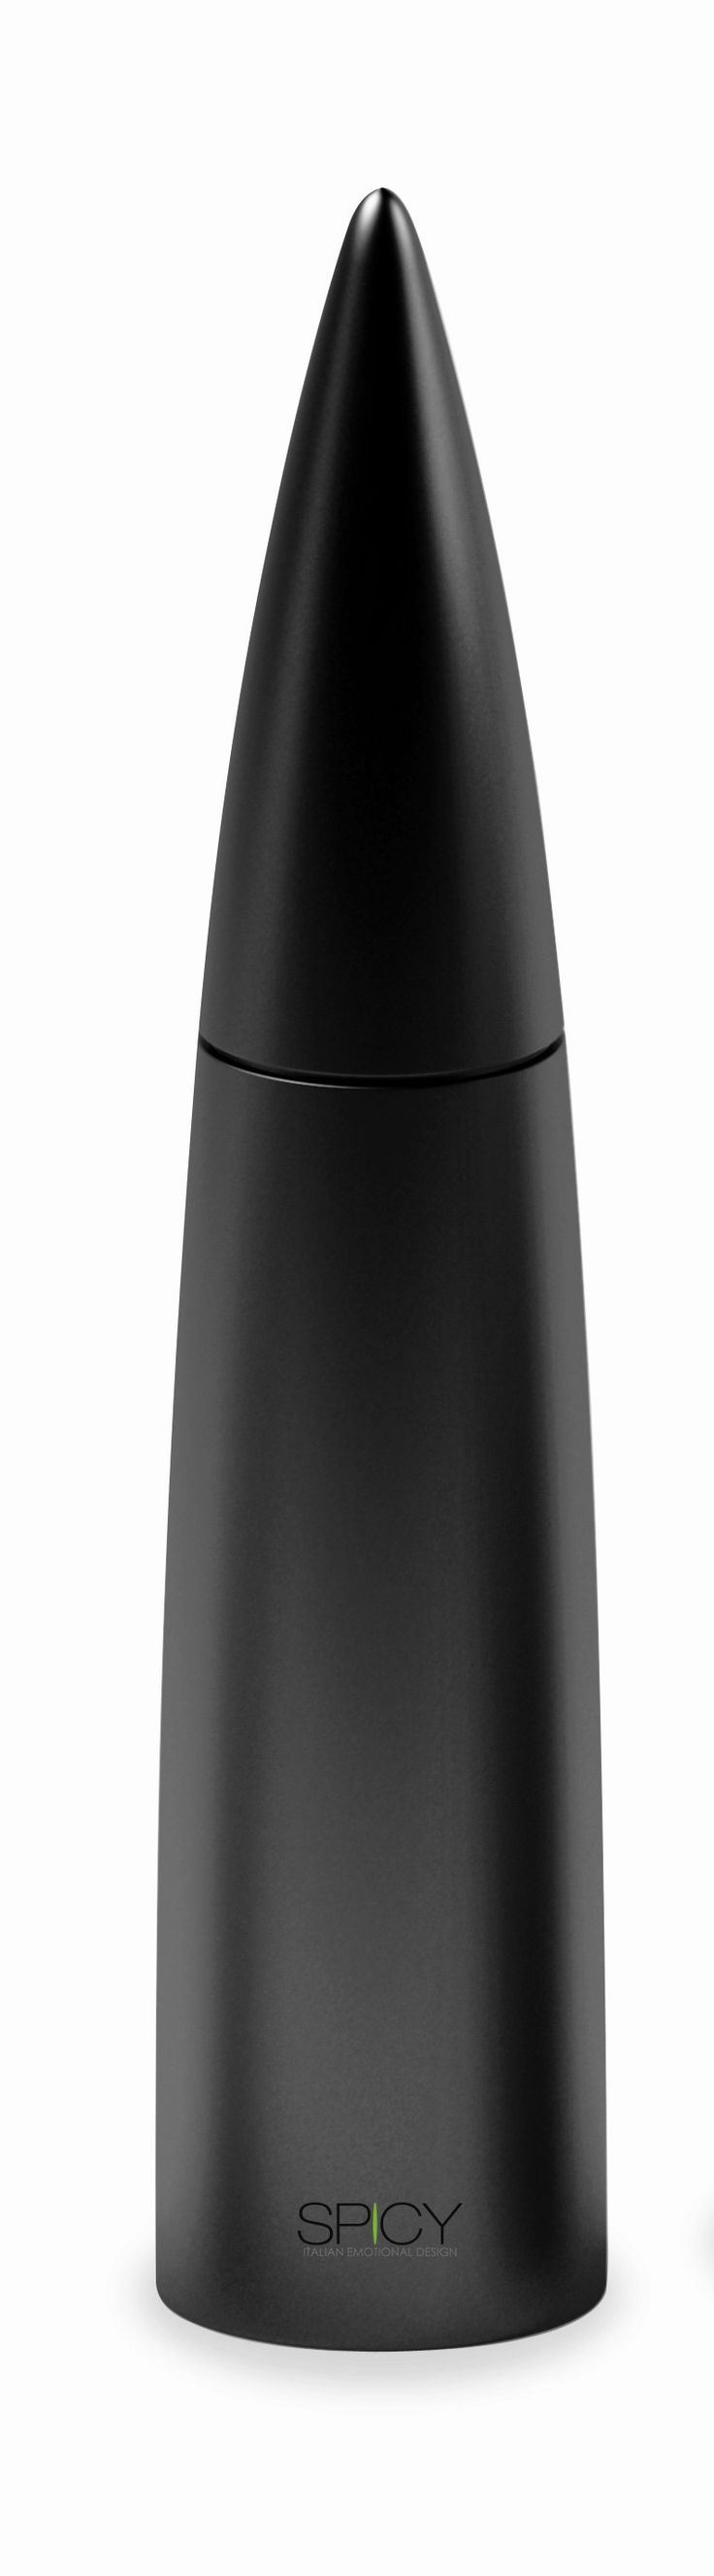 "Spicy Piperis Salt/Peppermill – Black  Product Description  Peppermill with long-life ceramic mechanism. Also suitable to grind salt, spices and coffee. Soft-touch finish. Height:12.5″ Width: 2.5"" Hand wash recommended Designed by Federico Arquint"